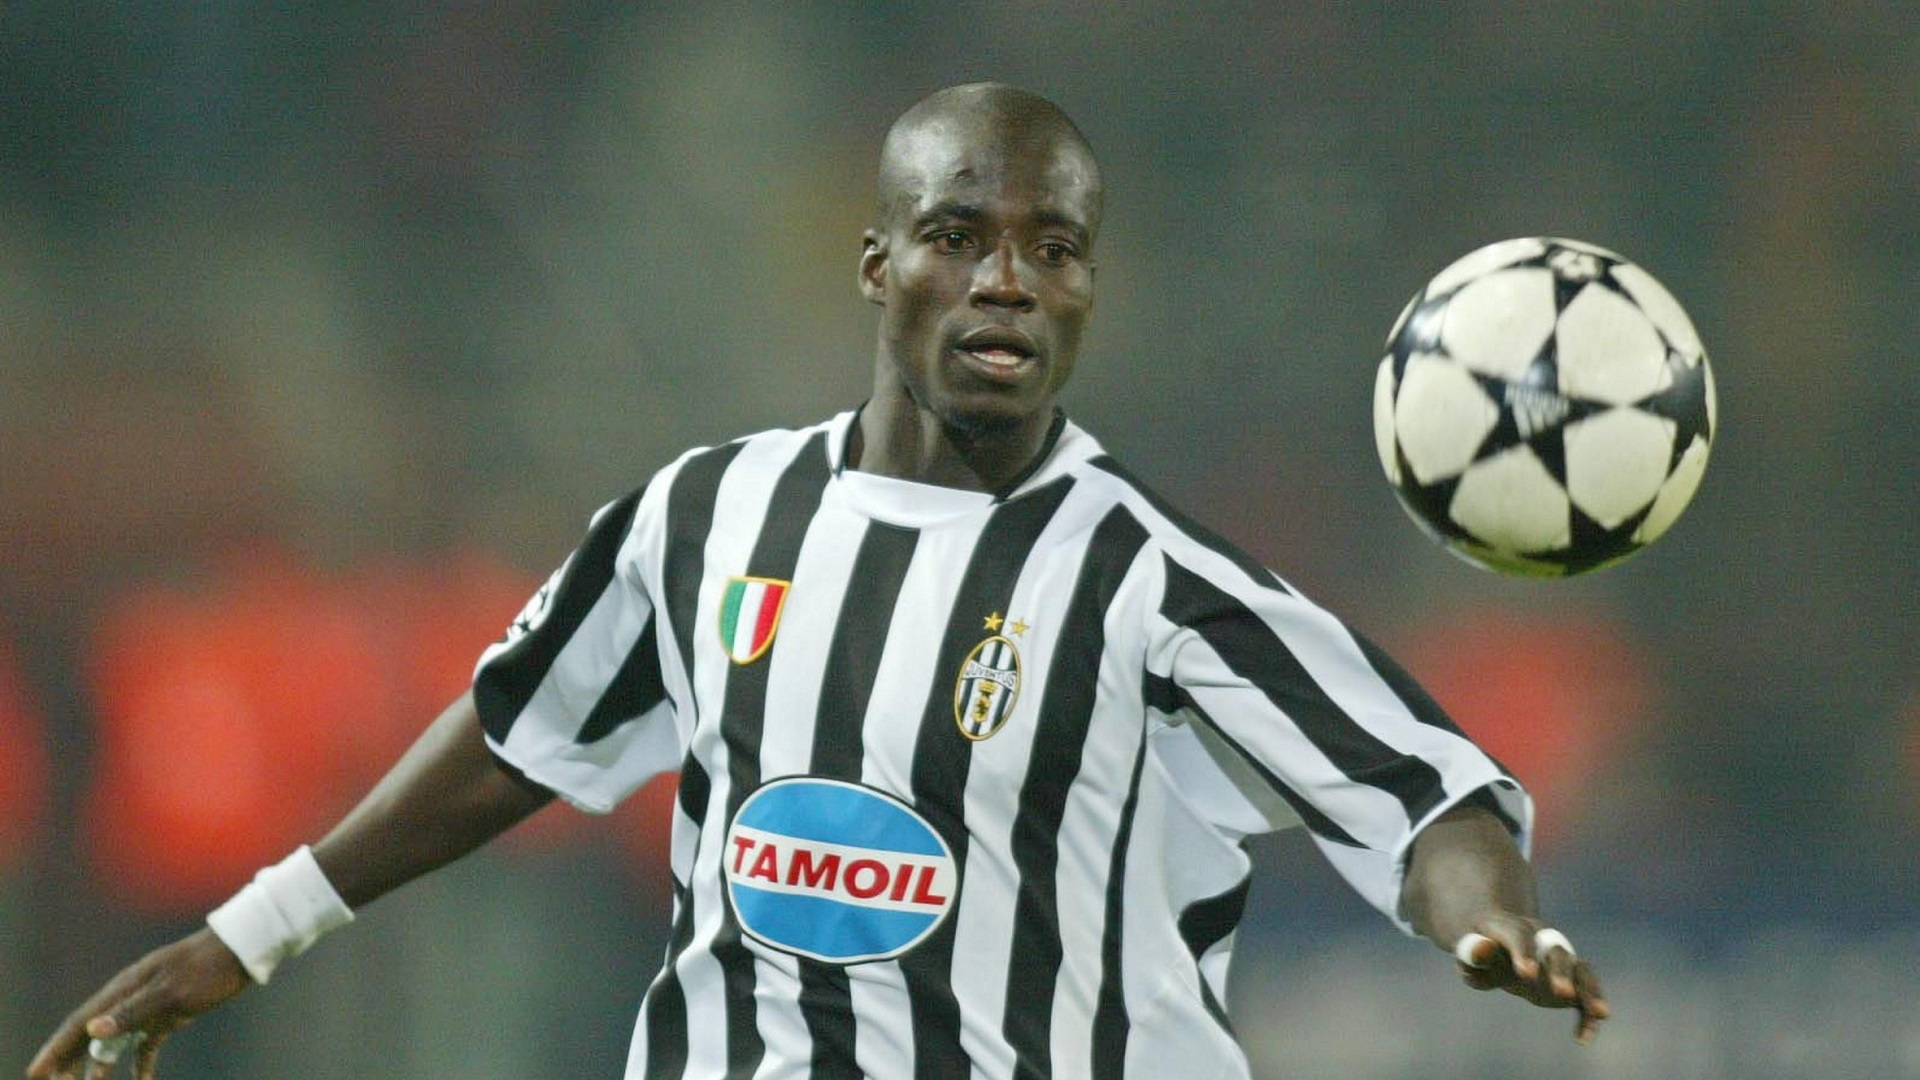 Appiah recounts 2006 World Cup penalty moment against the USA